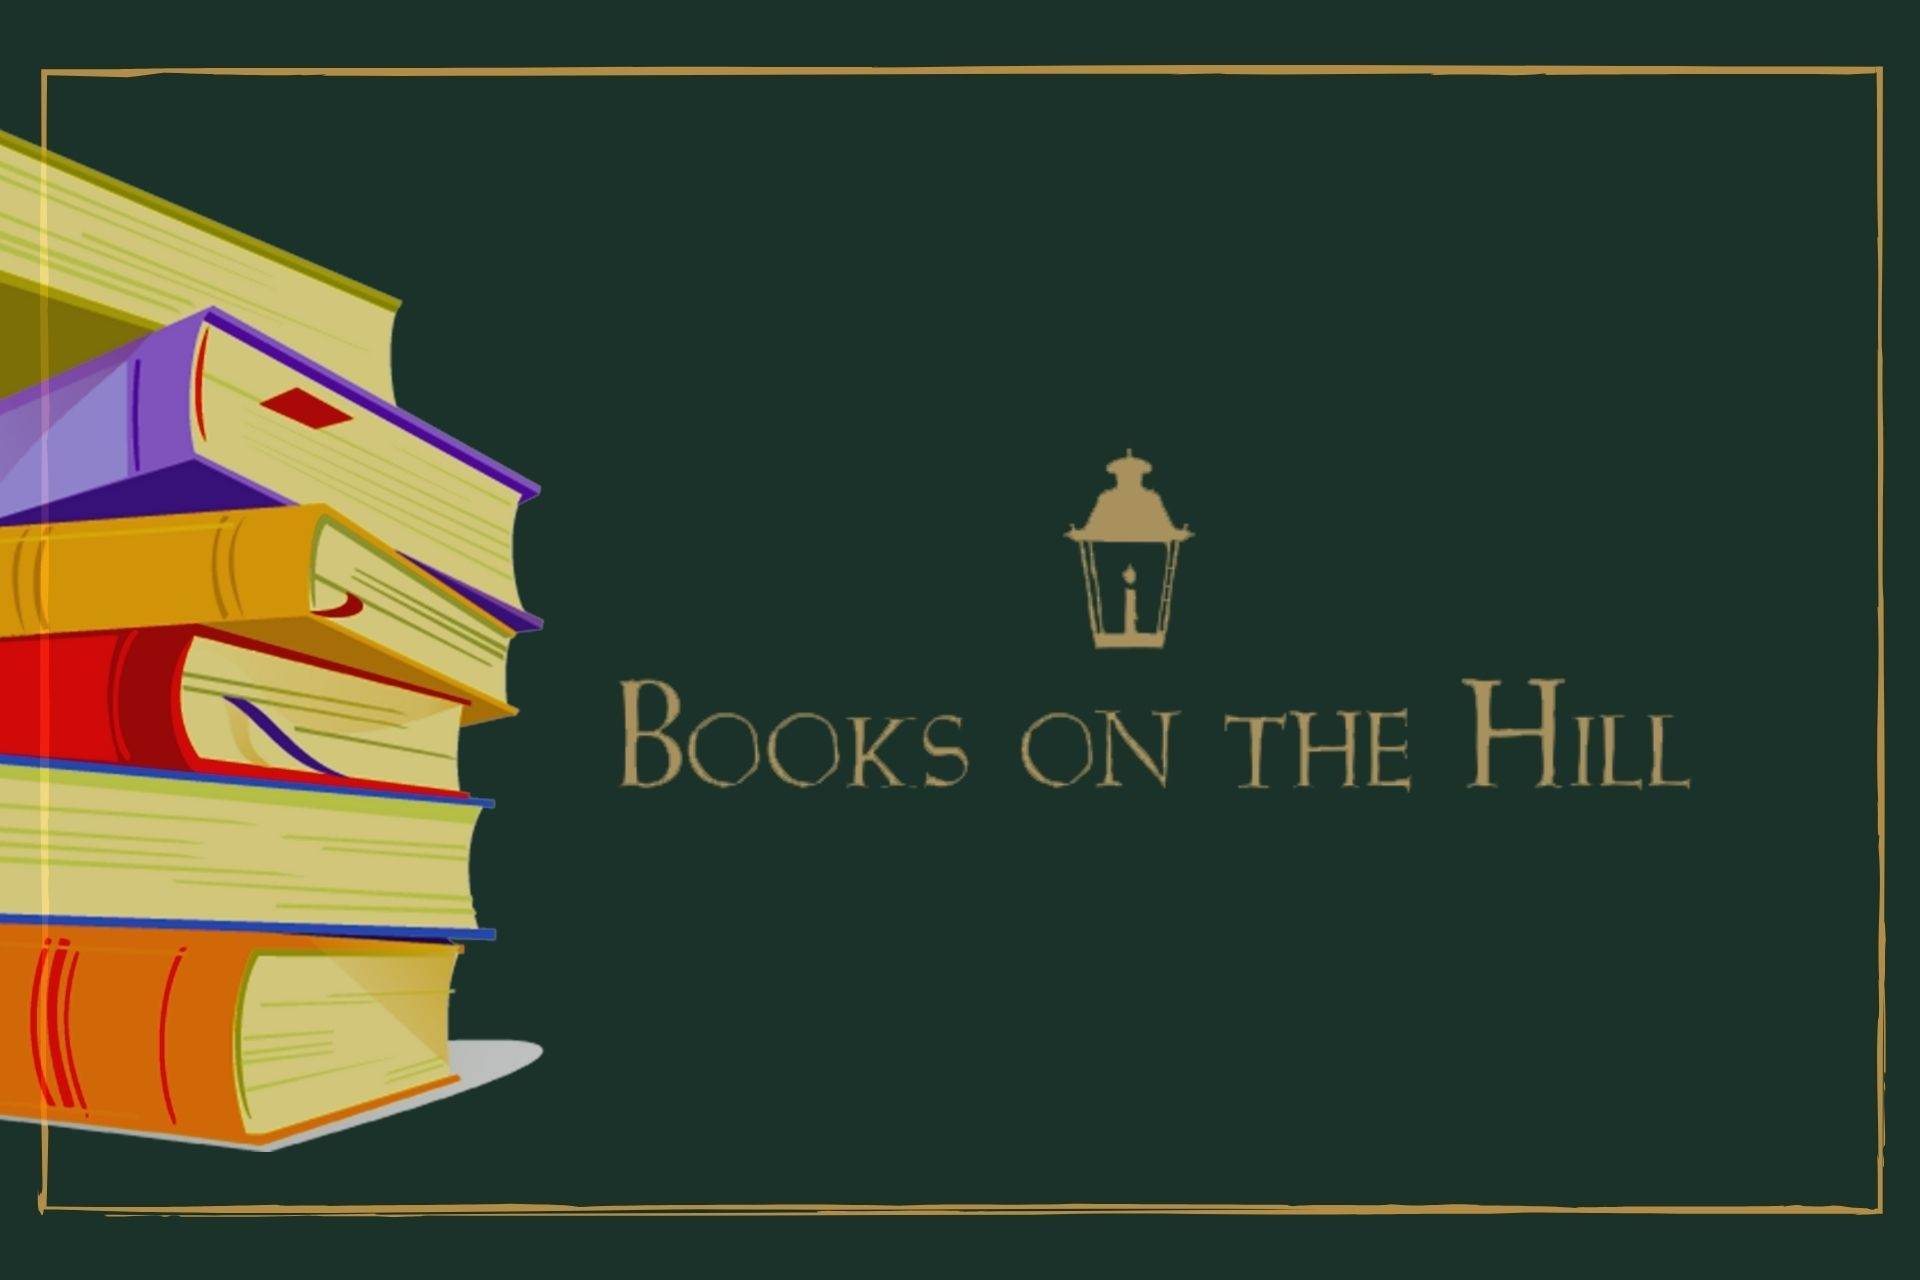 September Bookshop of the Month: Books on the Hill (St Albans)